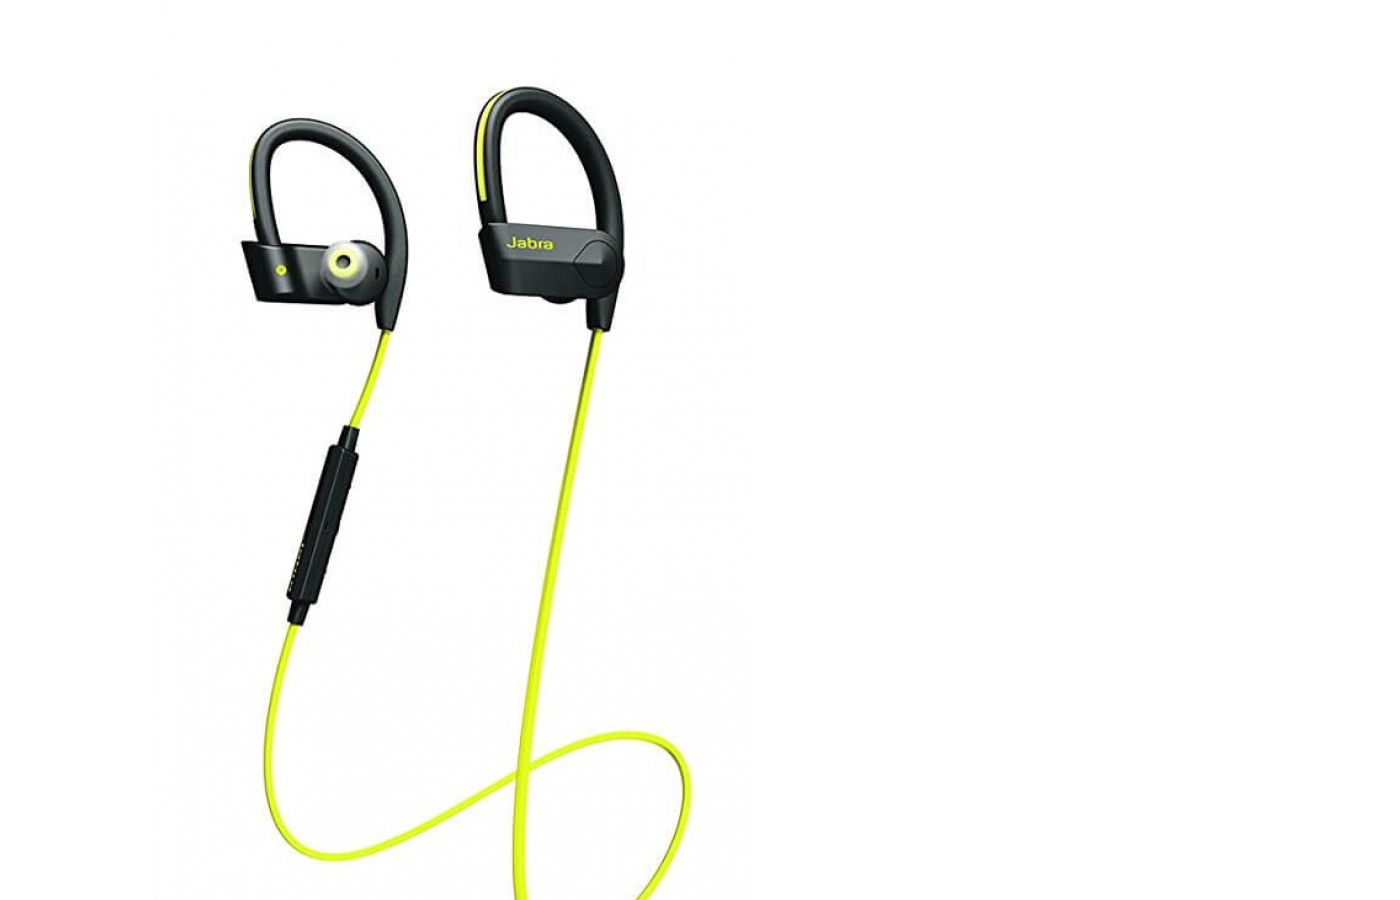 The Jabra Sport Pace overview